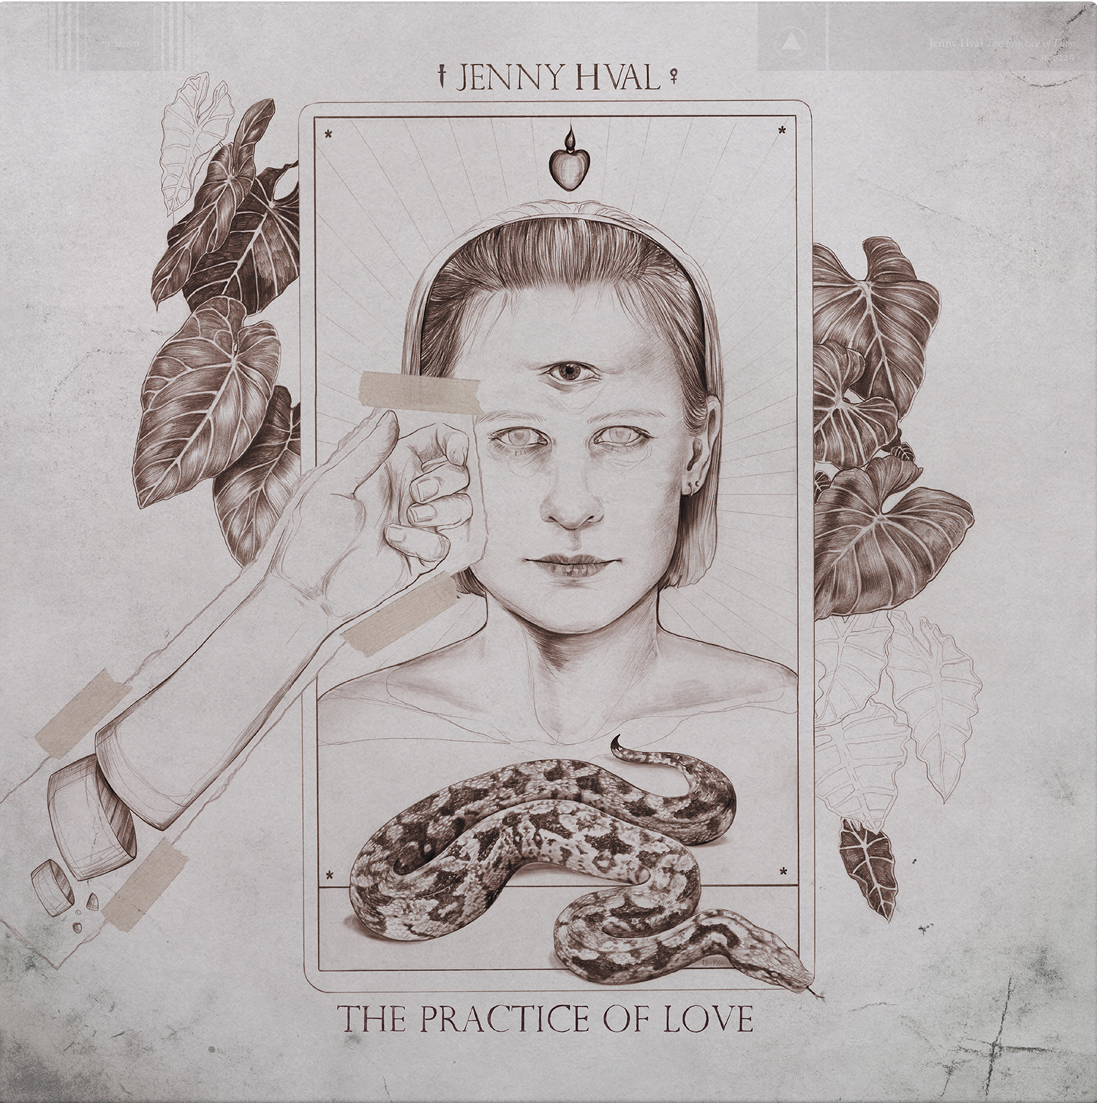 Jenny Hval Announces New Album 'The Practice of Love' – Republic of